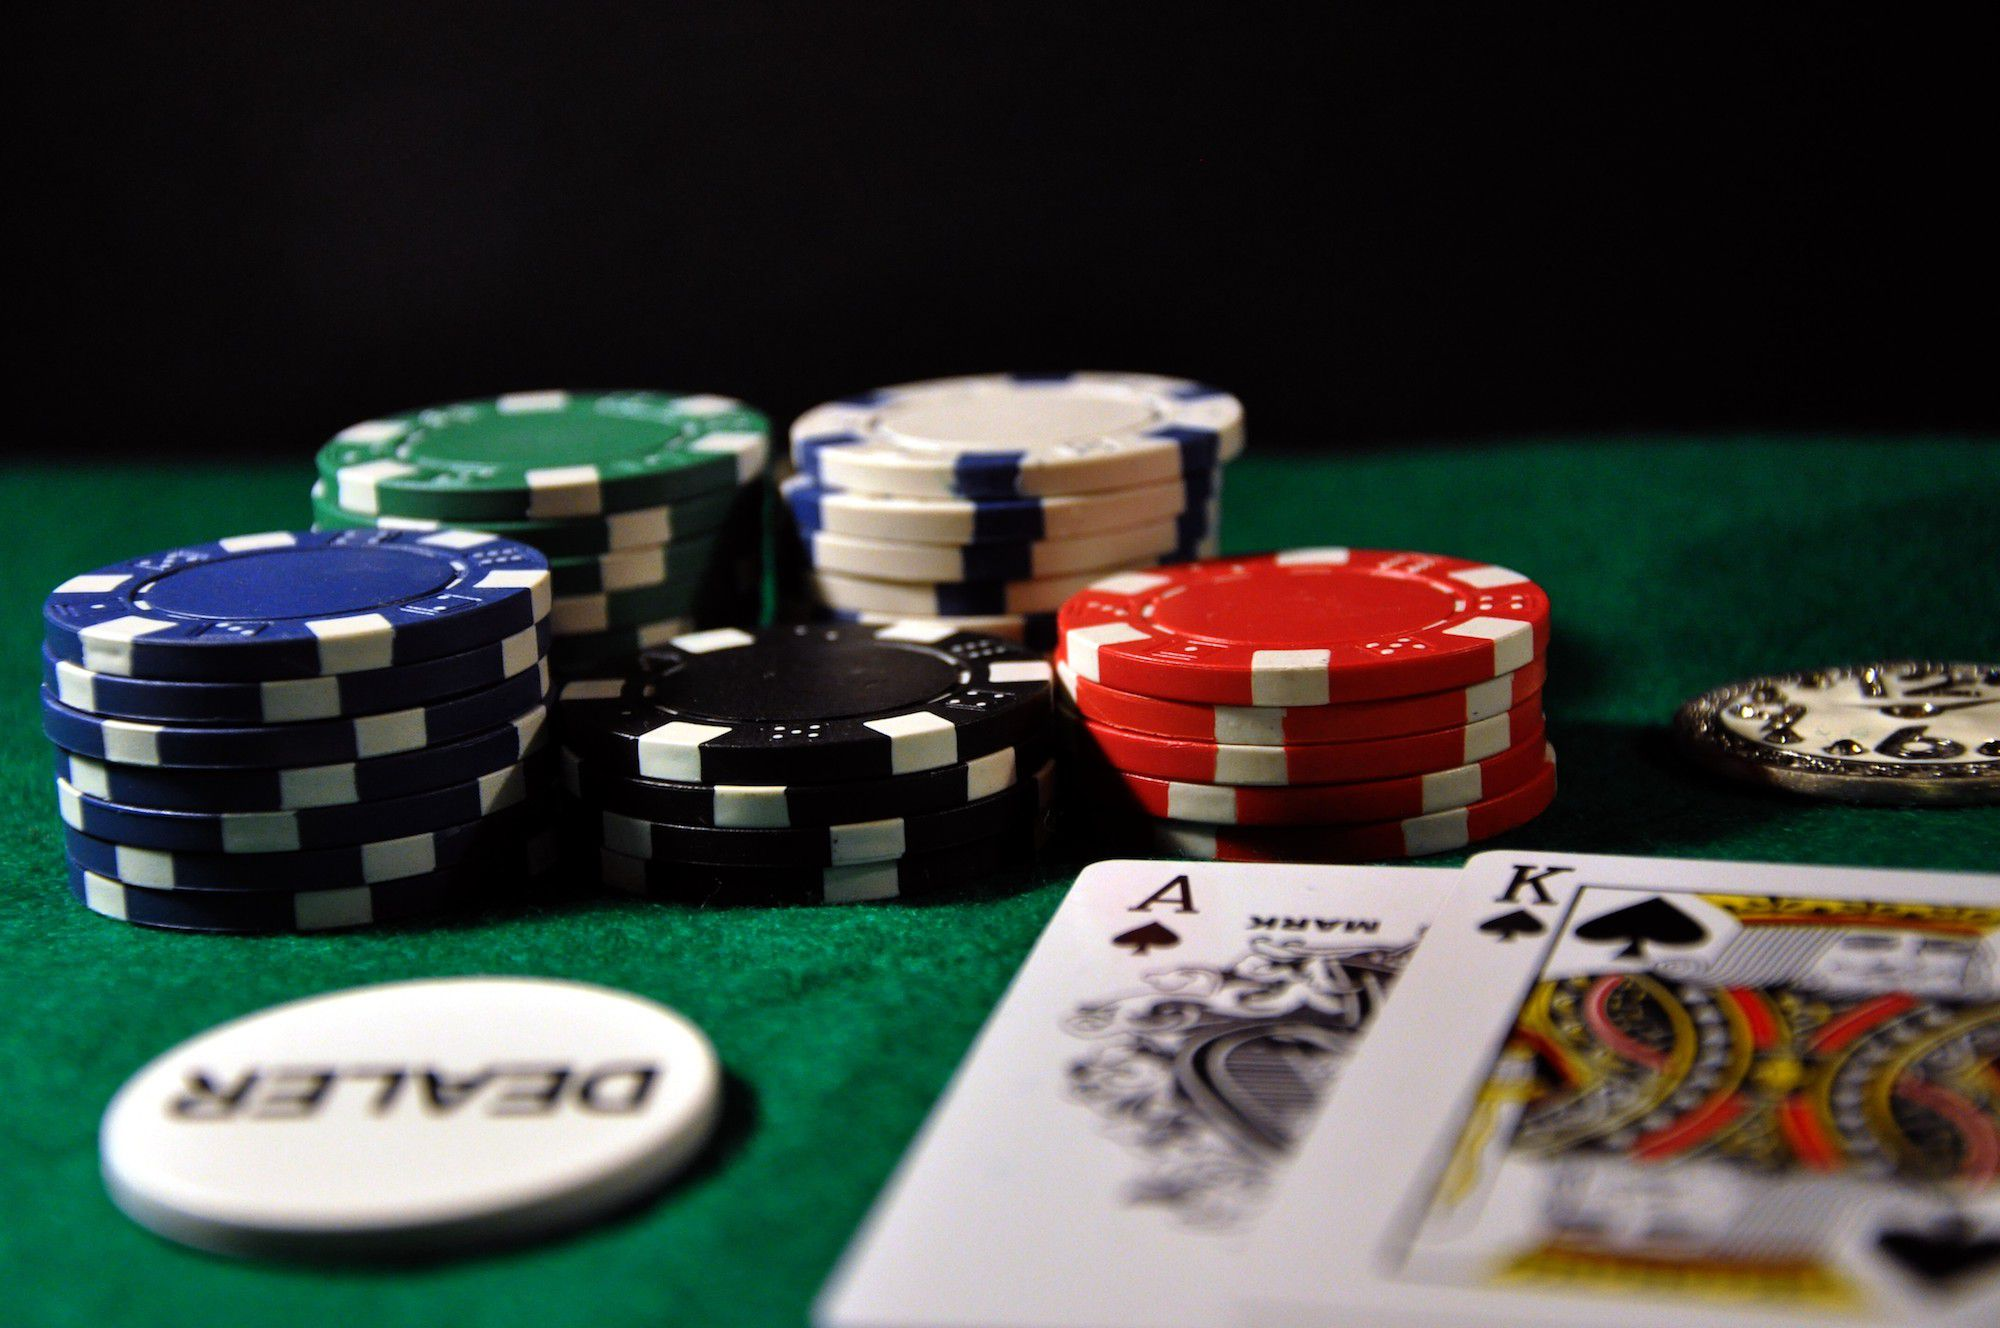 Add-ons In A Poker Tournament